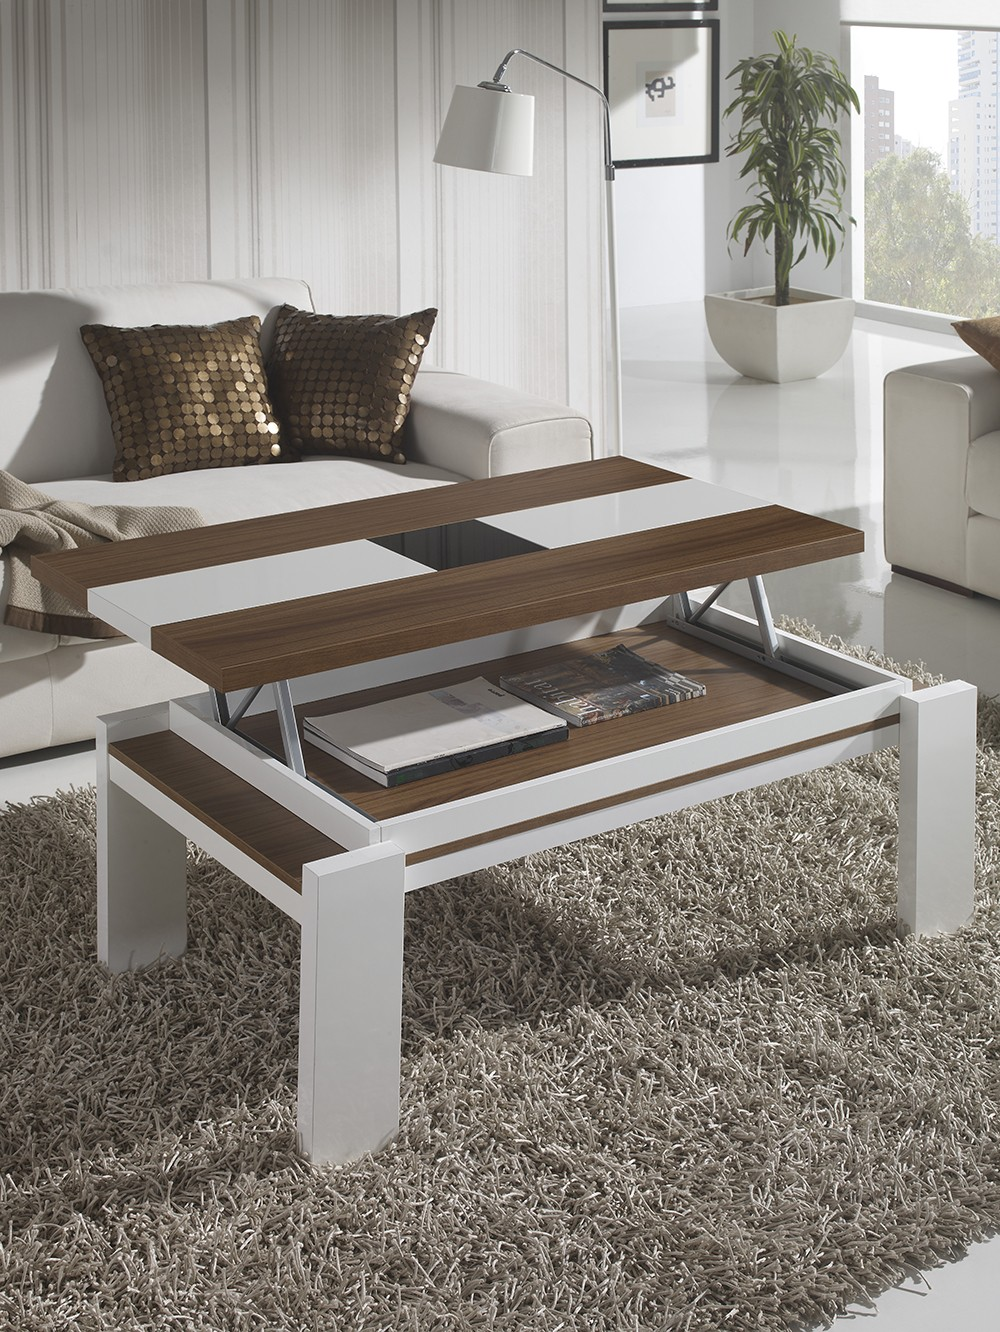 Table basse qui leve - Table basse de salon ...